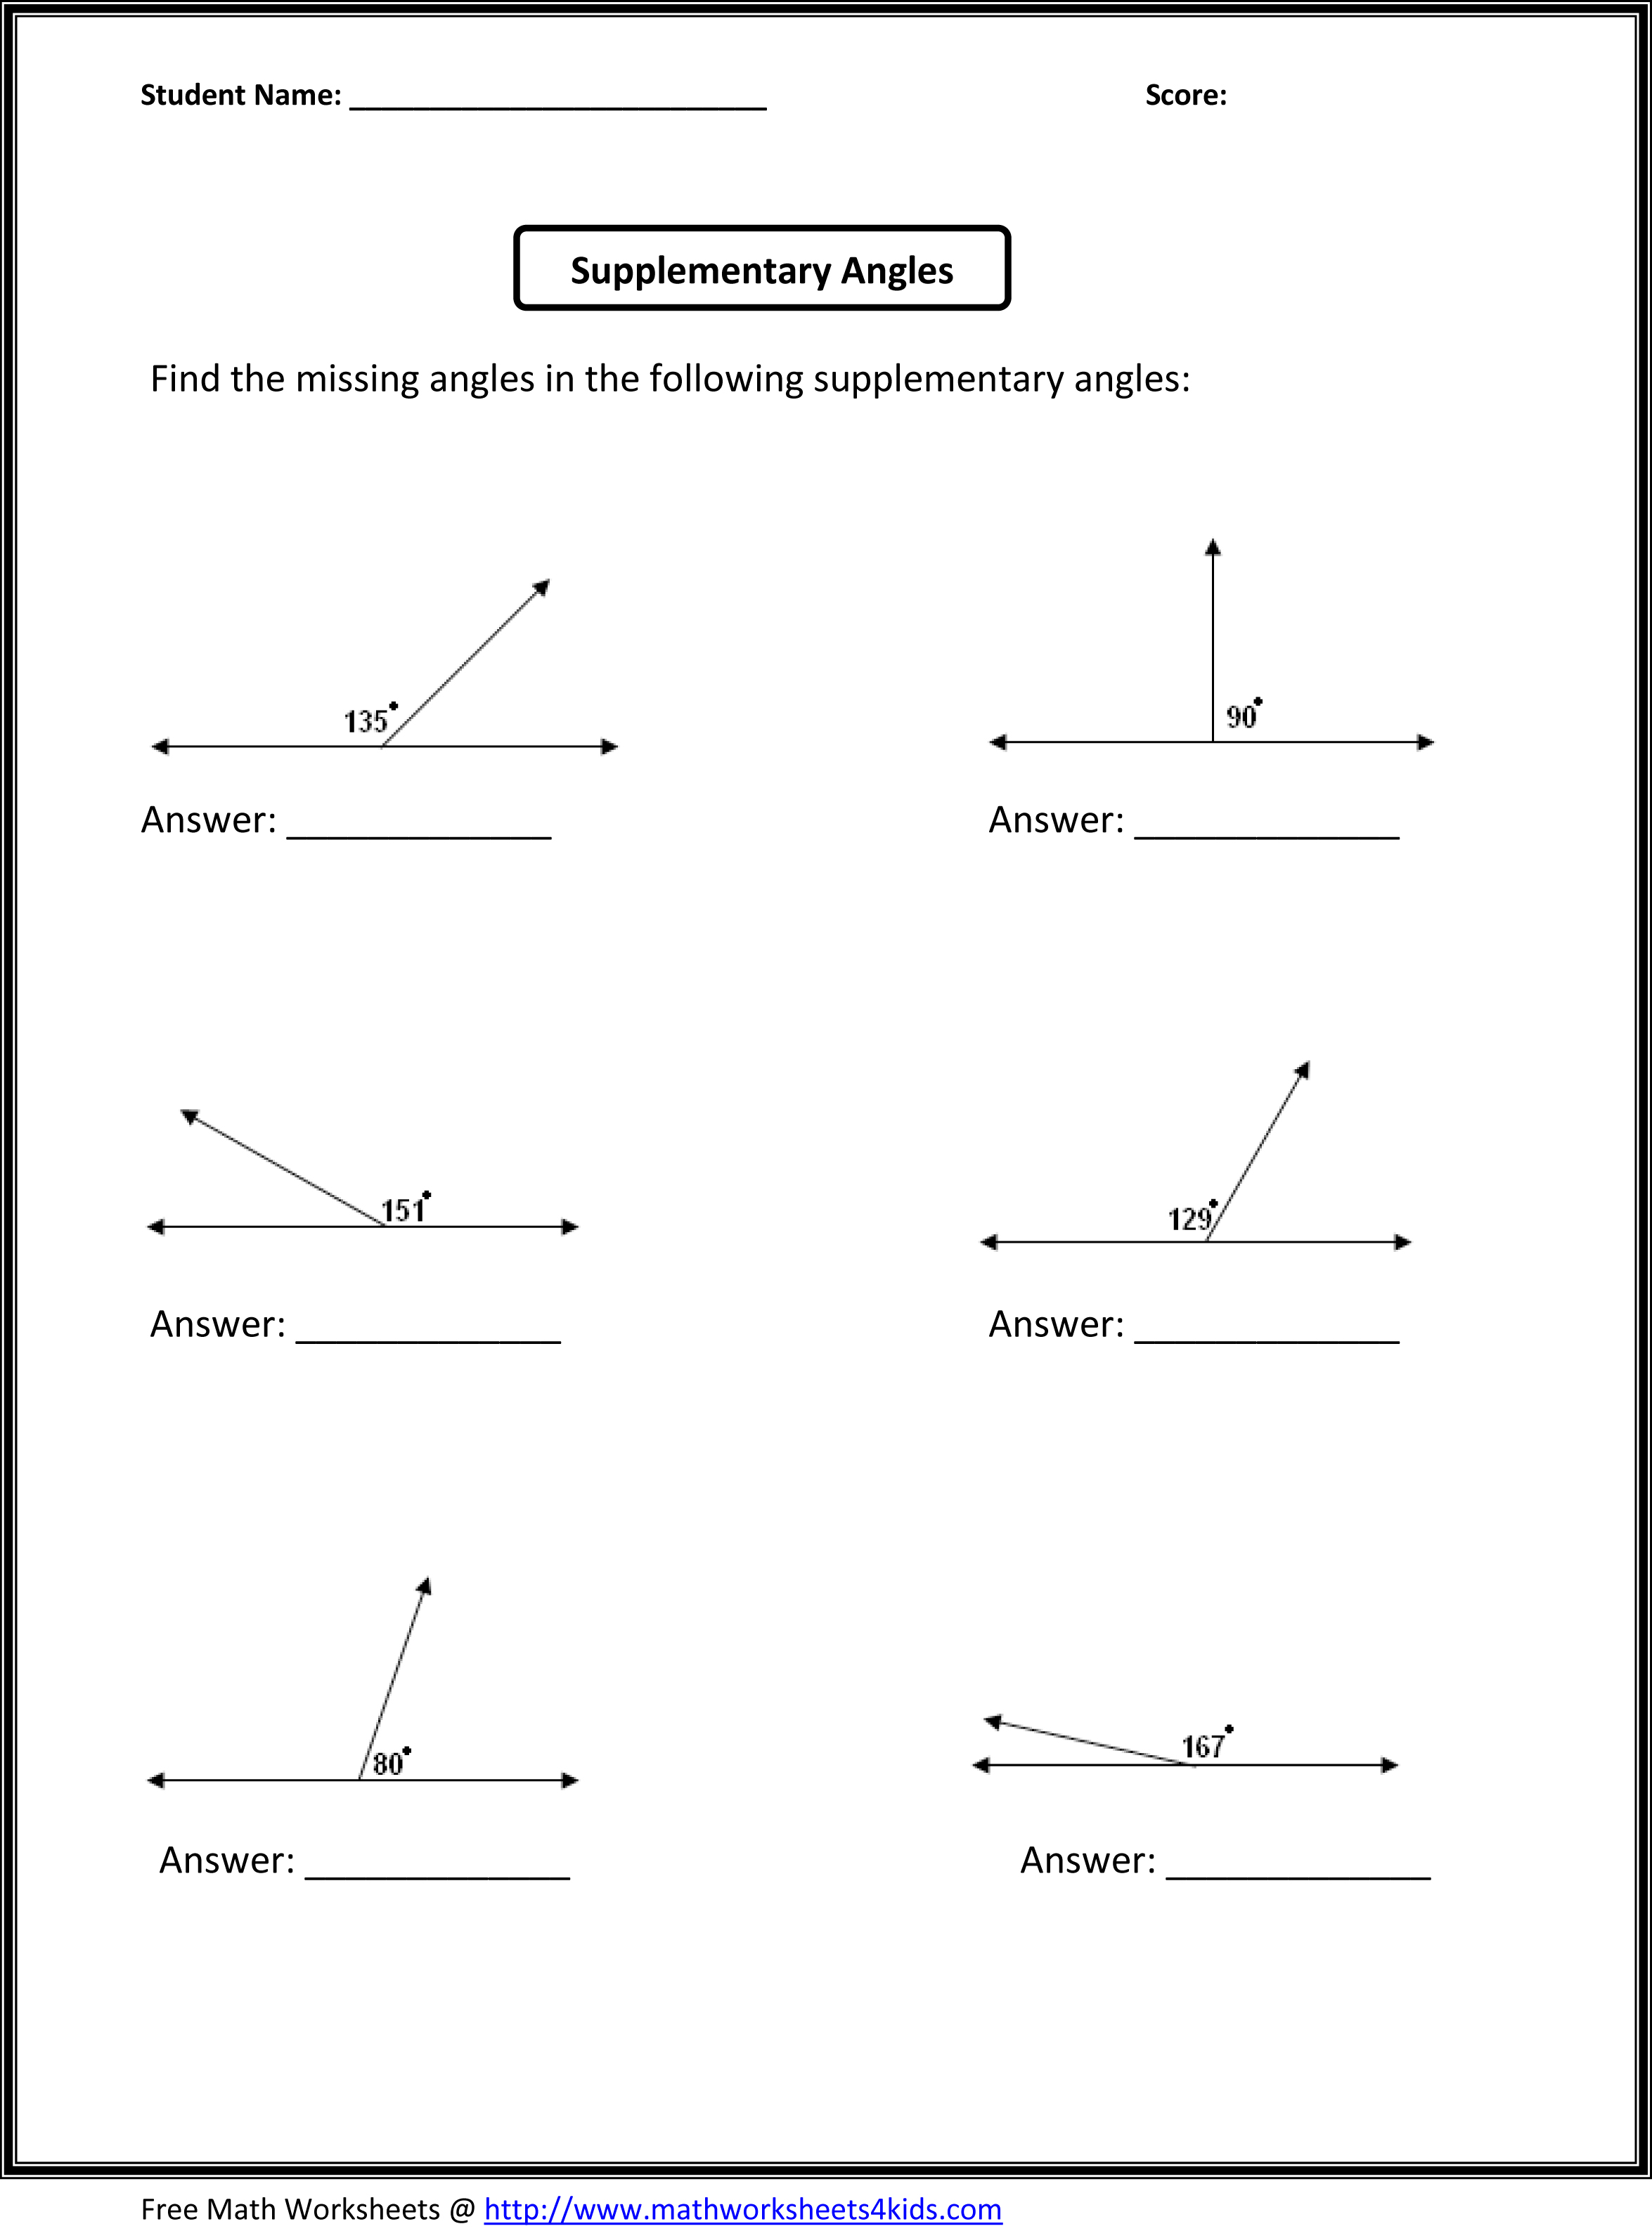 11 Best Images Of Find The Missing Angle Worksheet